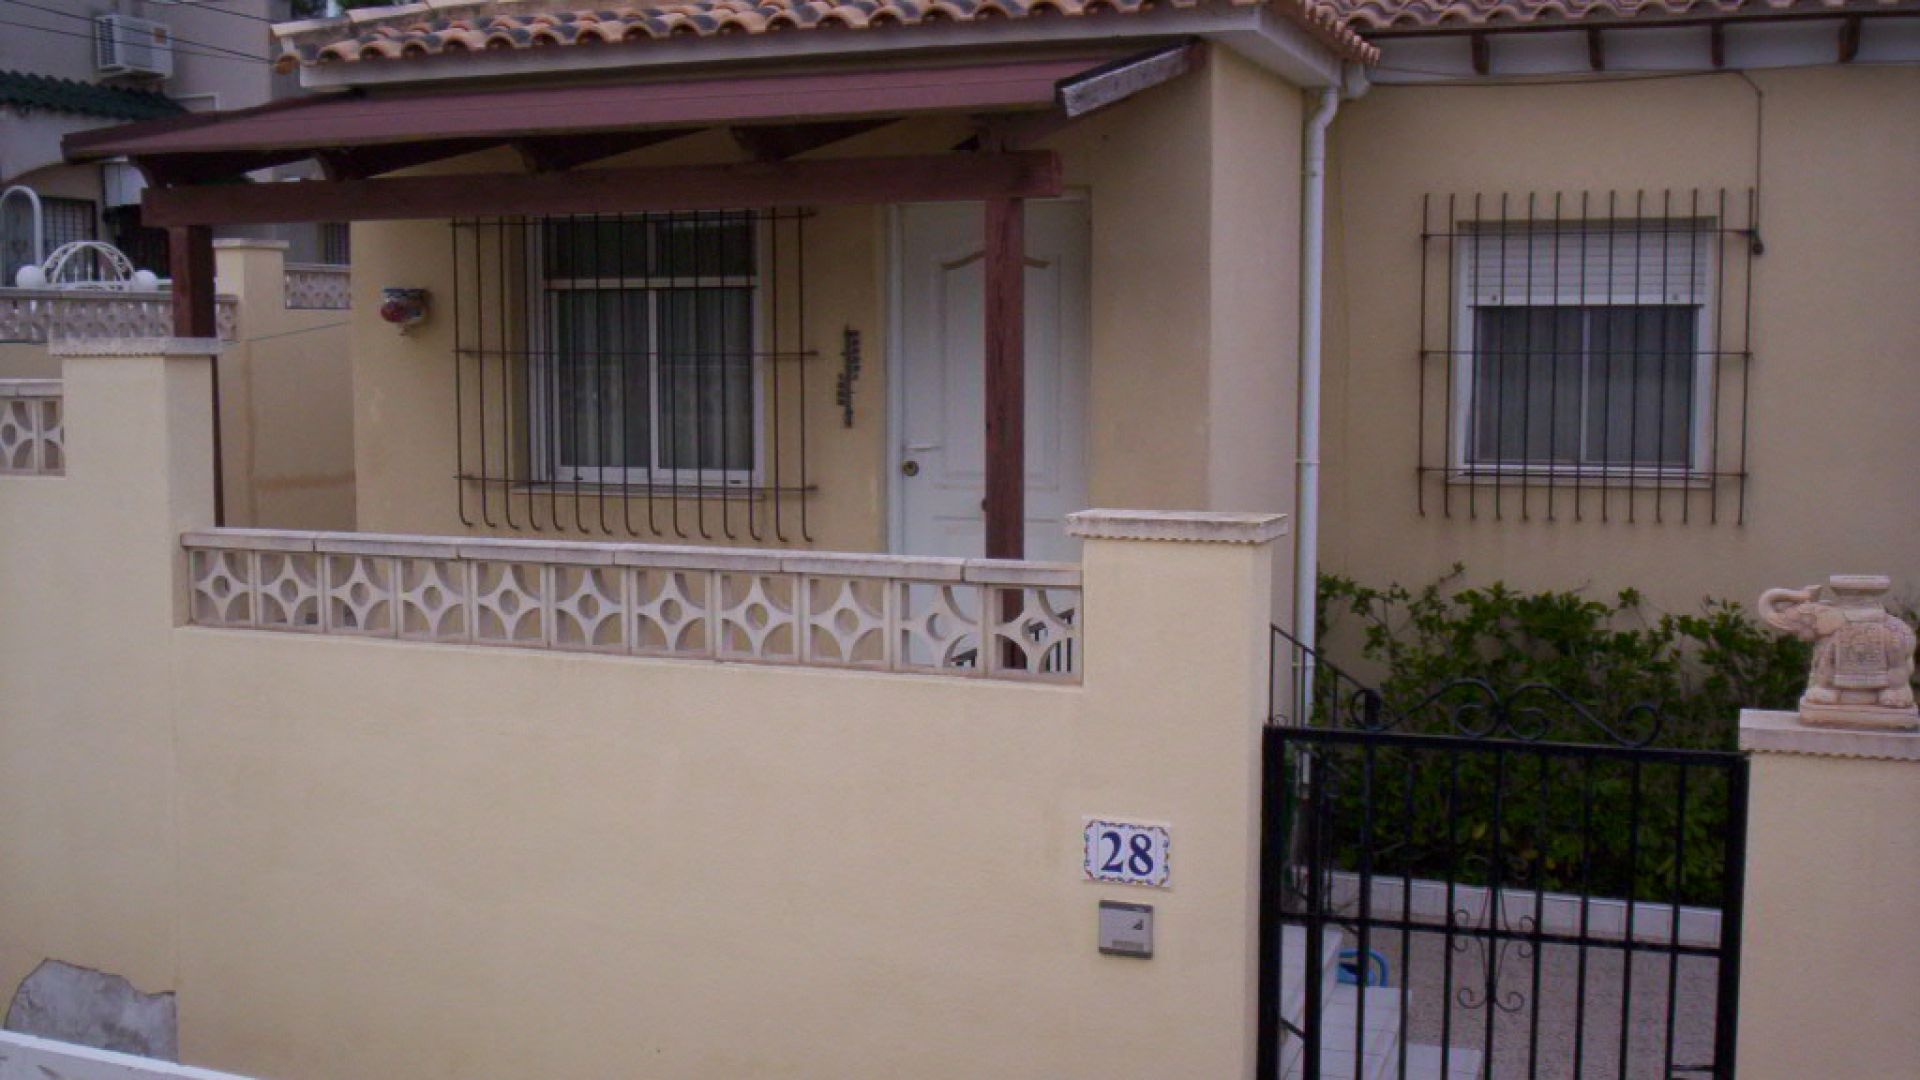 House in Torrevieja, Alicante, Spain